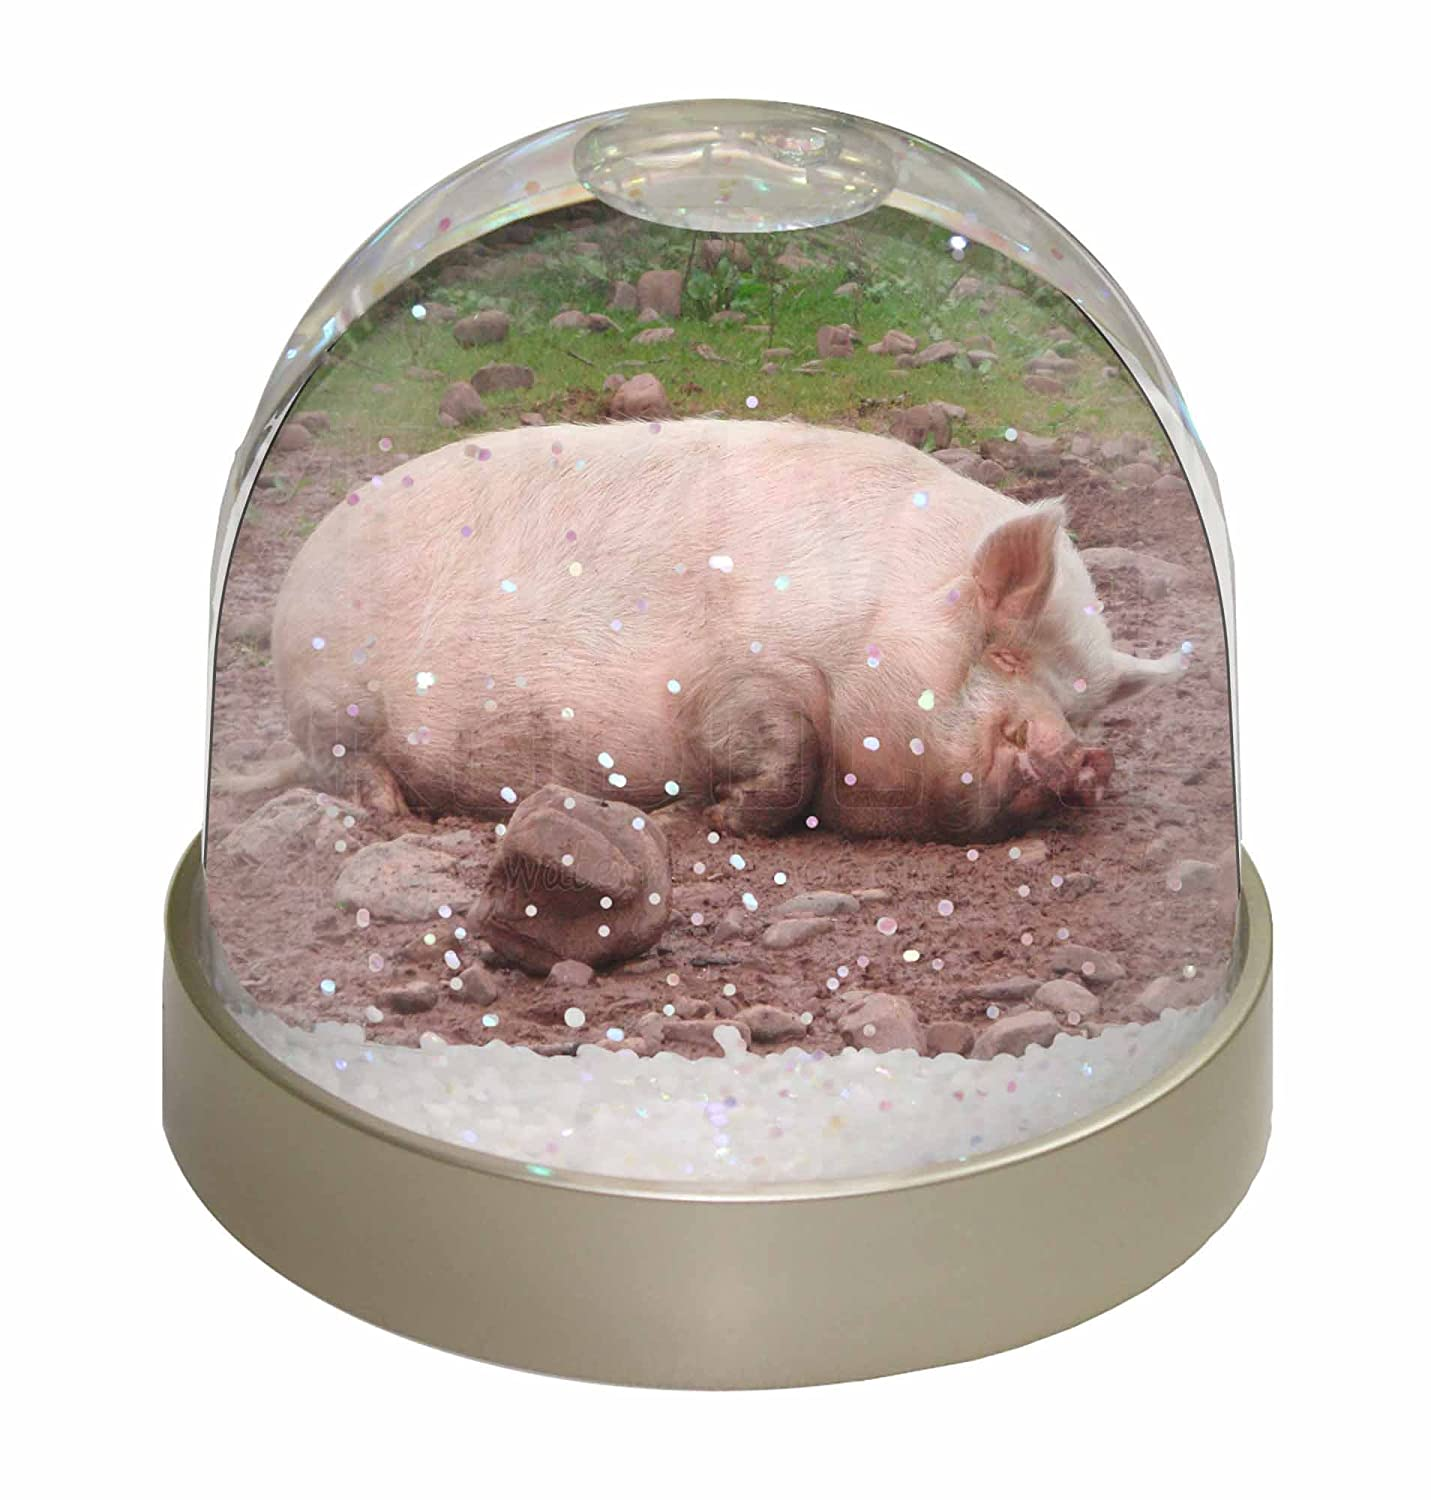 Advanta Sleeping Pig Print Snow Dome Globe Waterball Gift, Multi-Colour, 9.2 x 9.2 x 8 cm Advanta Products AP-5GL